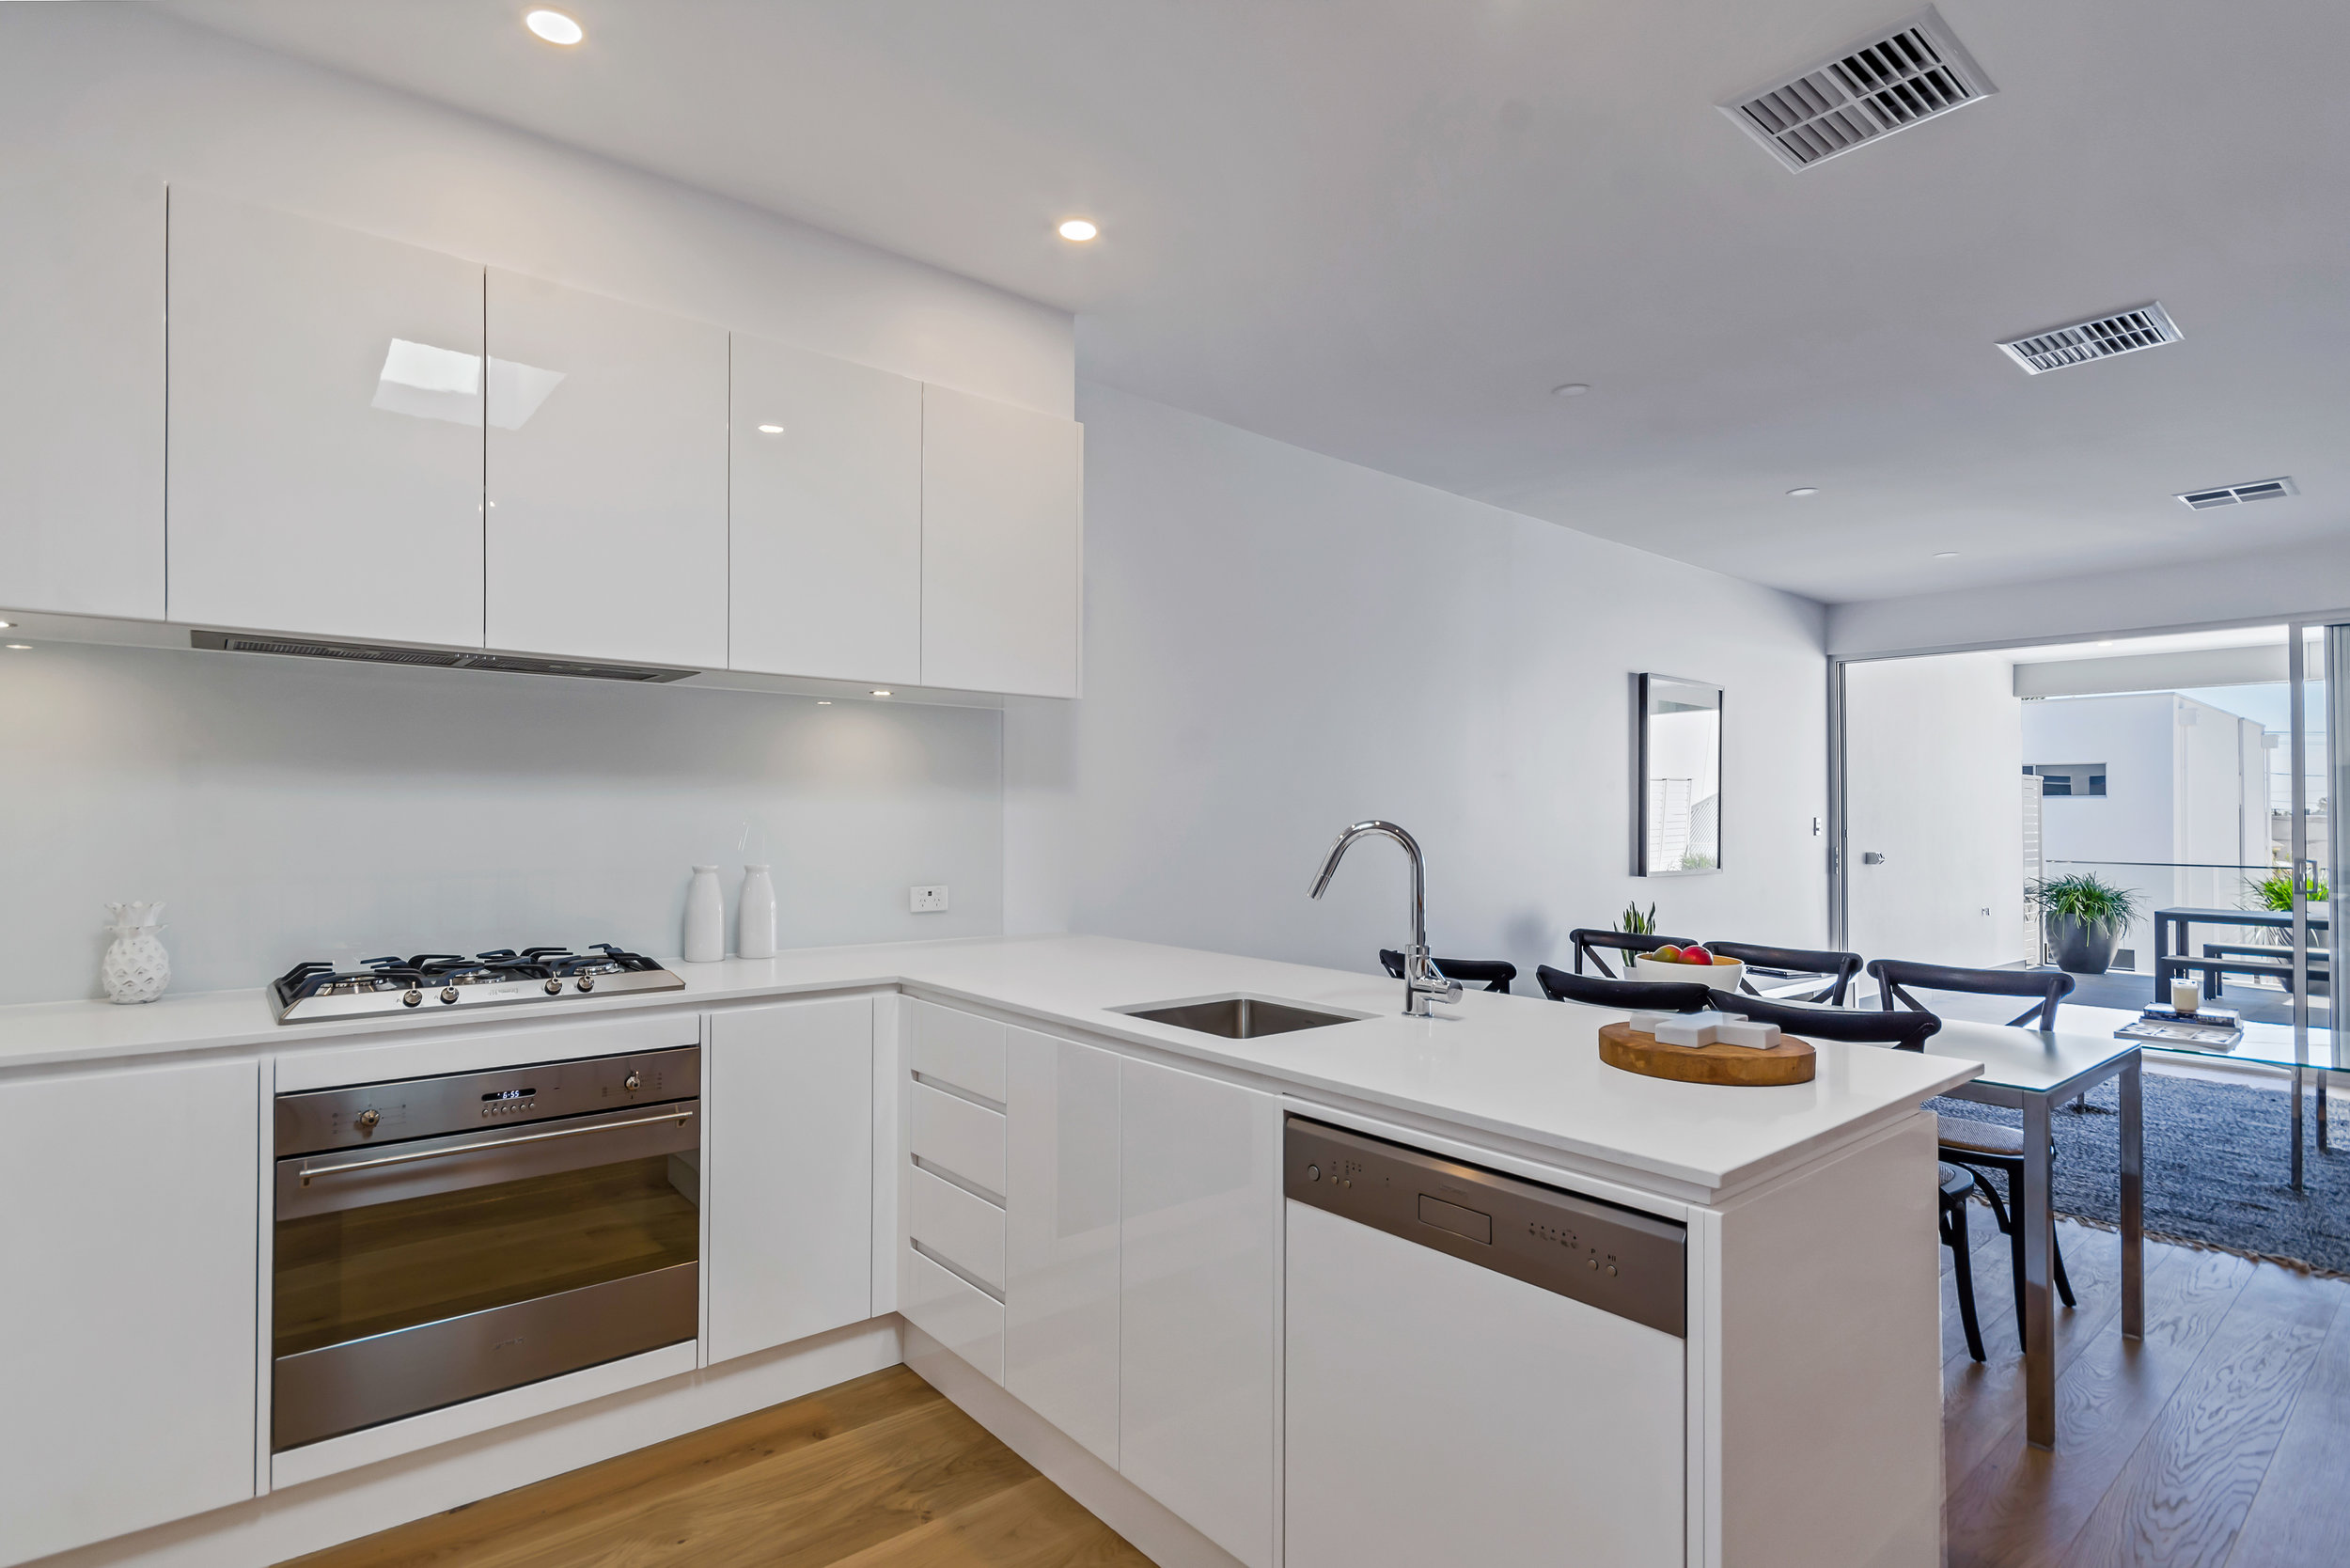 2-pac kitchen finished with Caesar stone bench tops, stainless steel Smeg appliances, over looking the sensational open living area